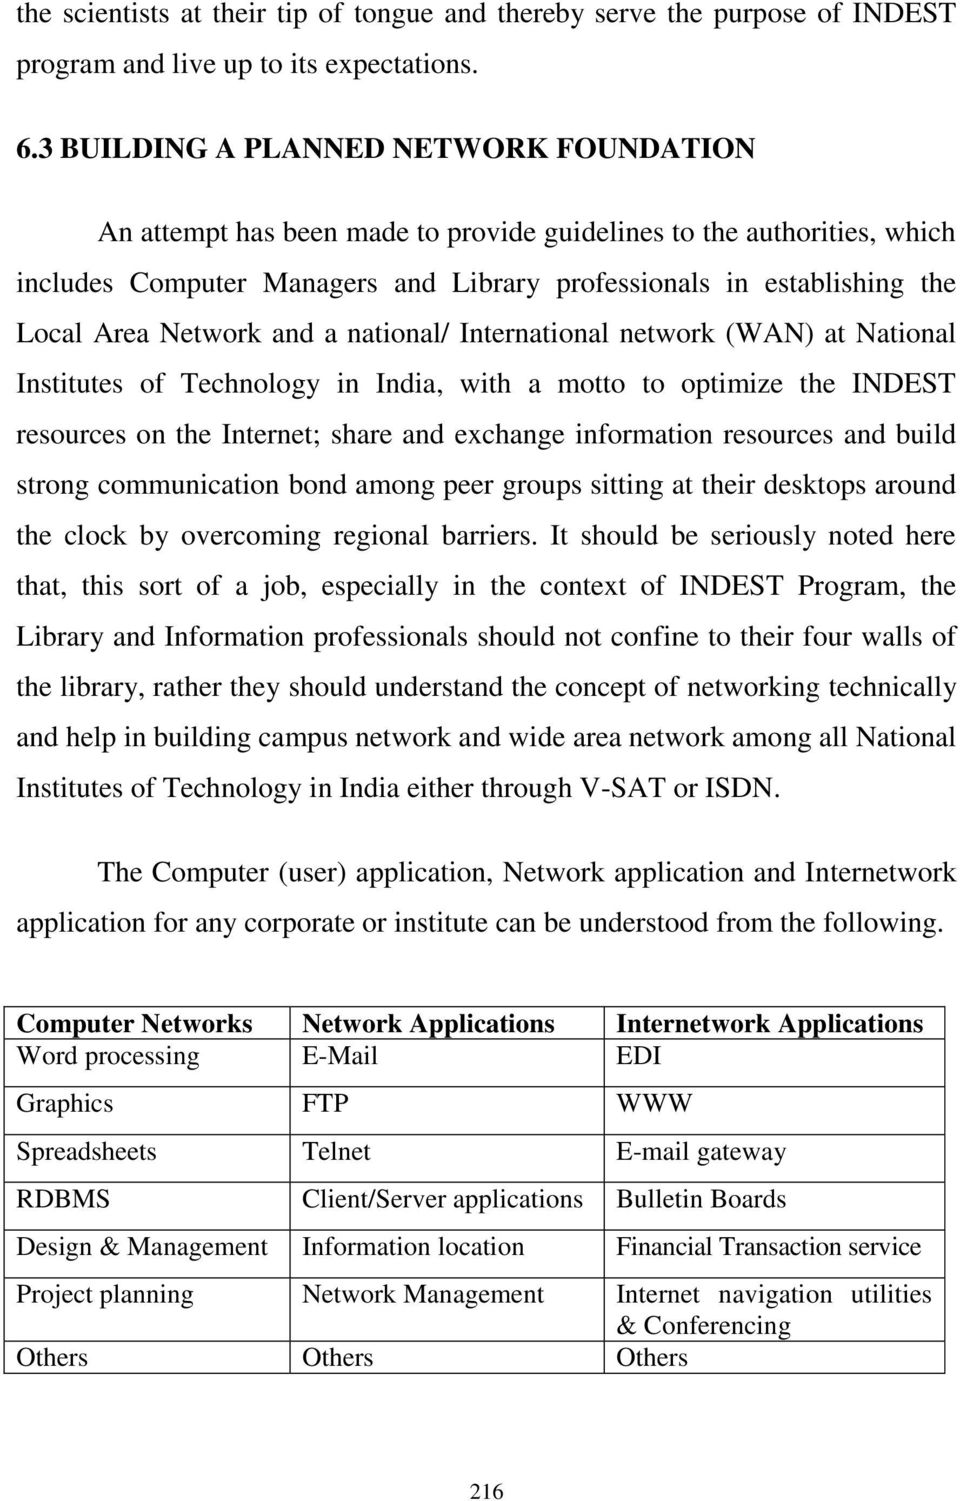 Network and a national/ International network (WAN) at National Institutes of Technology in India, with a motto to optimize the INDEST resources on the Internet; share and exchange information